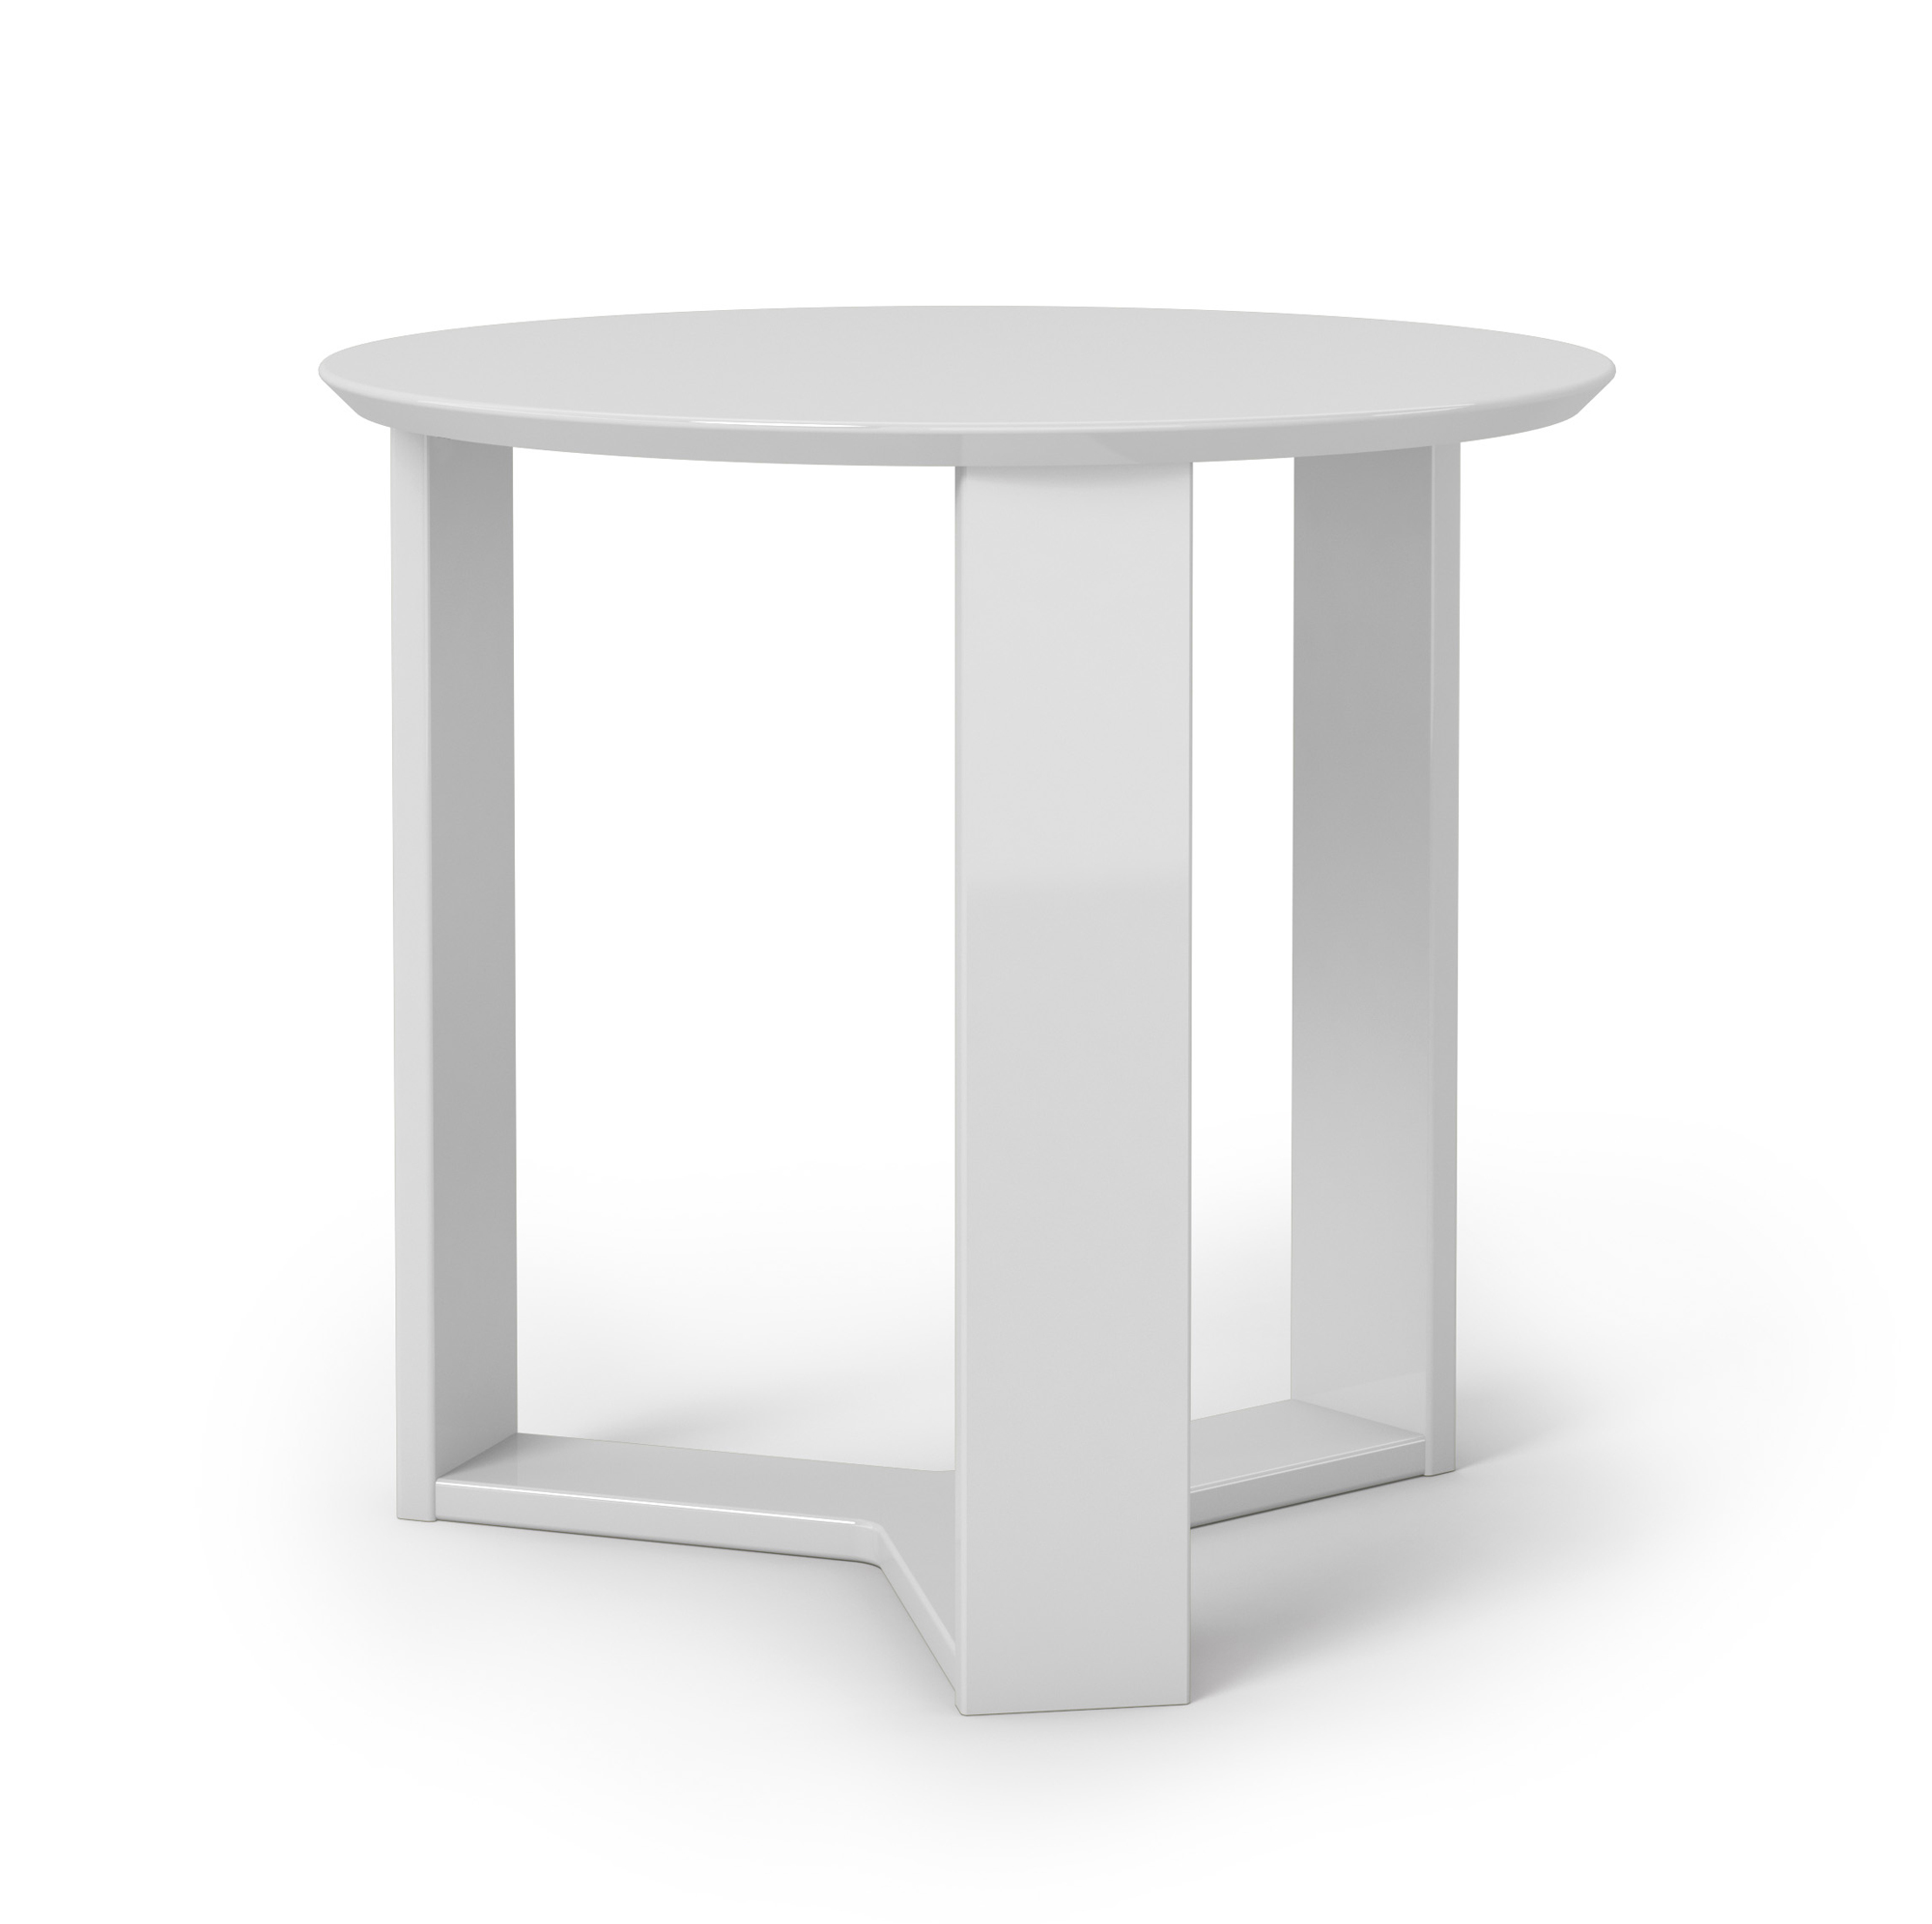 white round accent table threshold wood madison gloss end battery operated bedroom lights plastic tables modern dining room furniture lucite kitchen set small grey bedside ikea